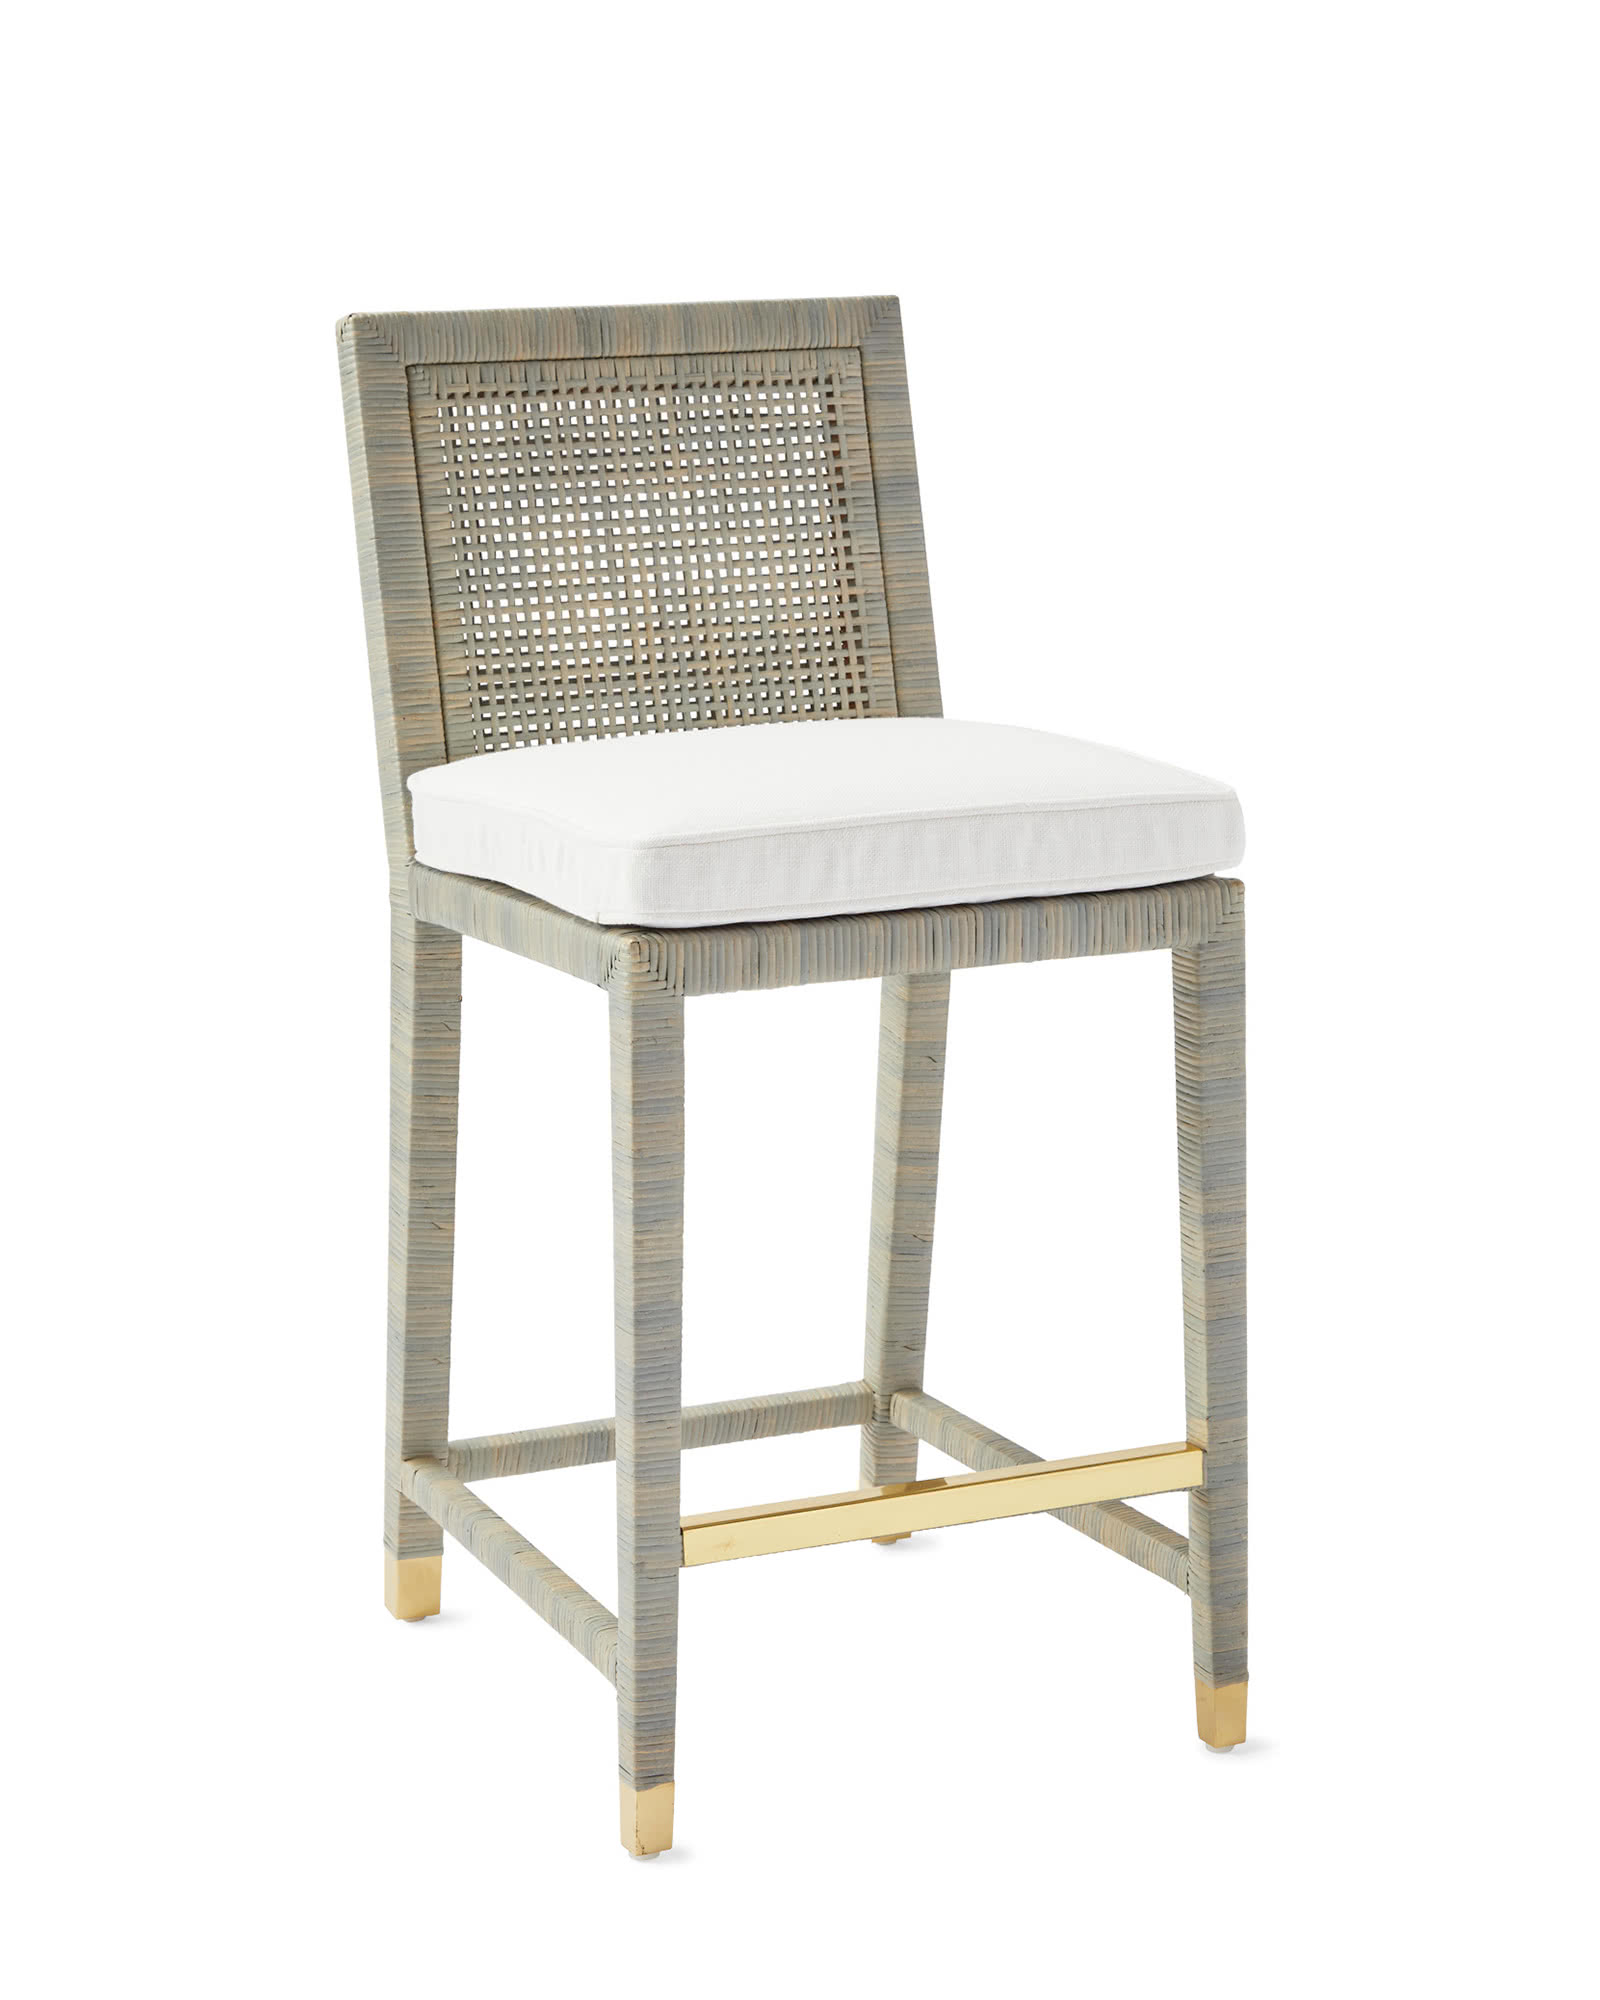 Balboa Counter Stool - Mist,